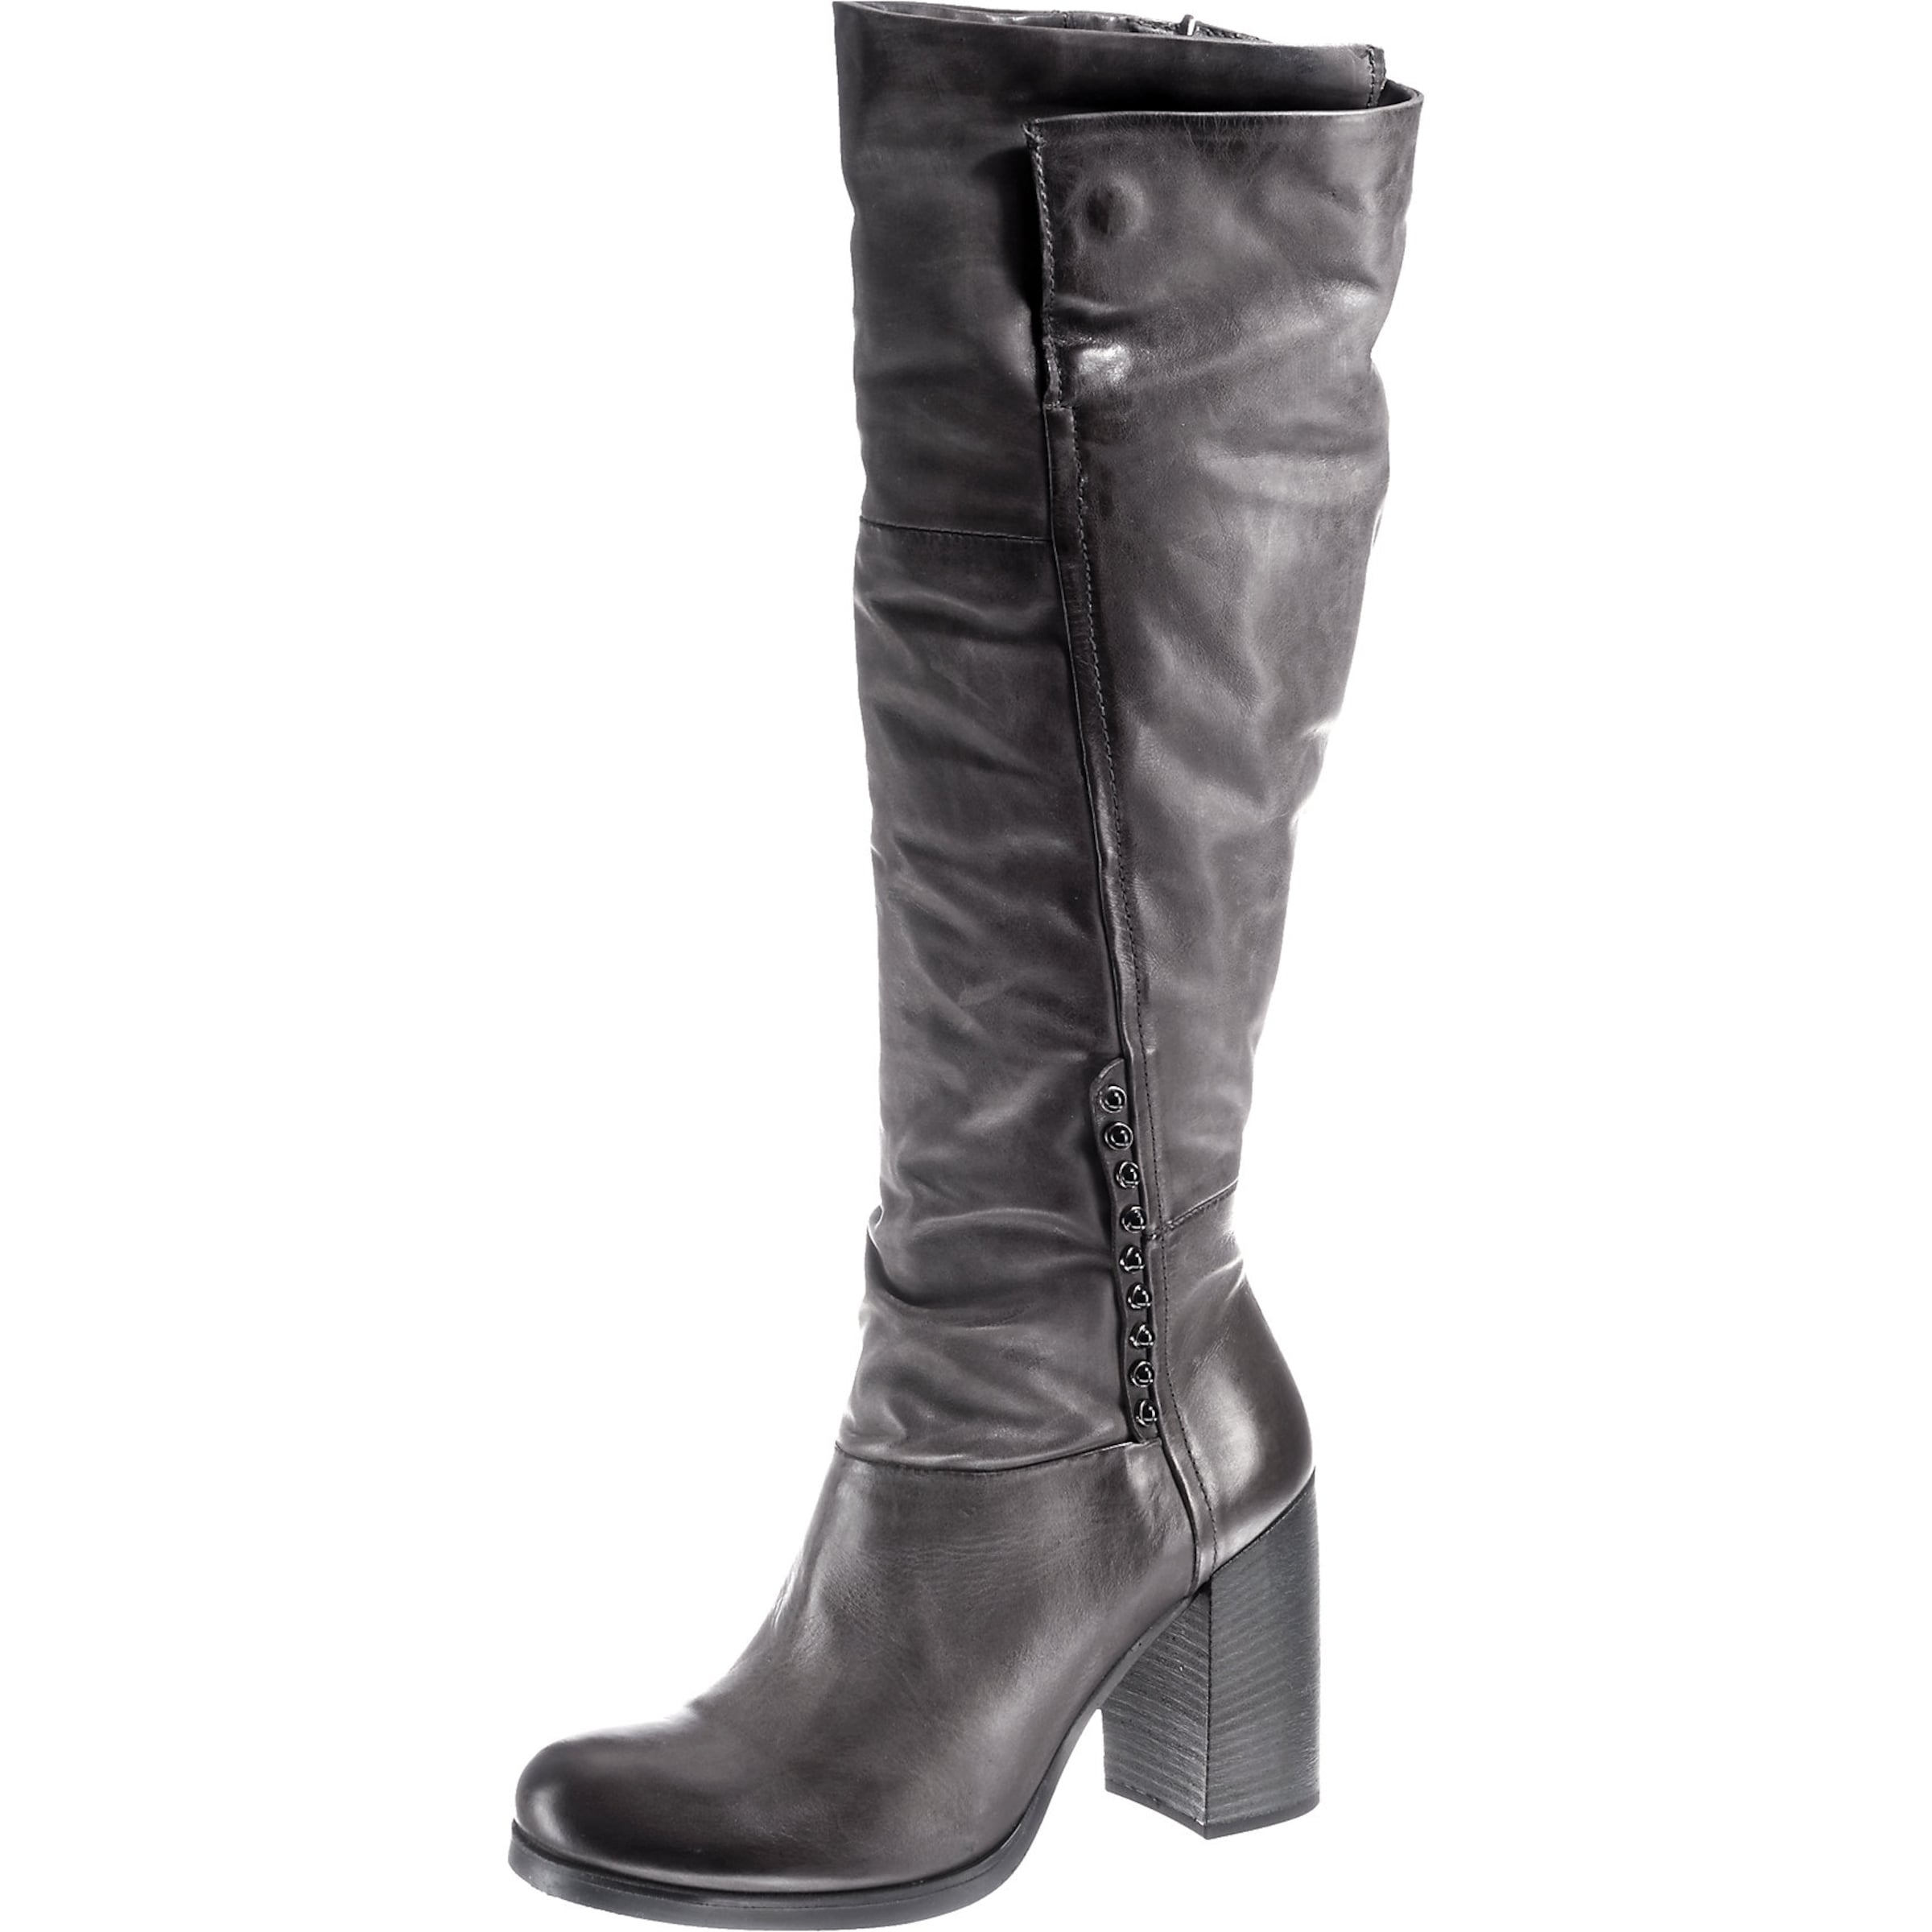 In Taupe In Mjus Stiefel Taupe Mjus Stiefel Mjus rstQdCh